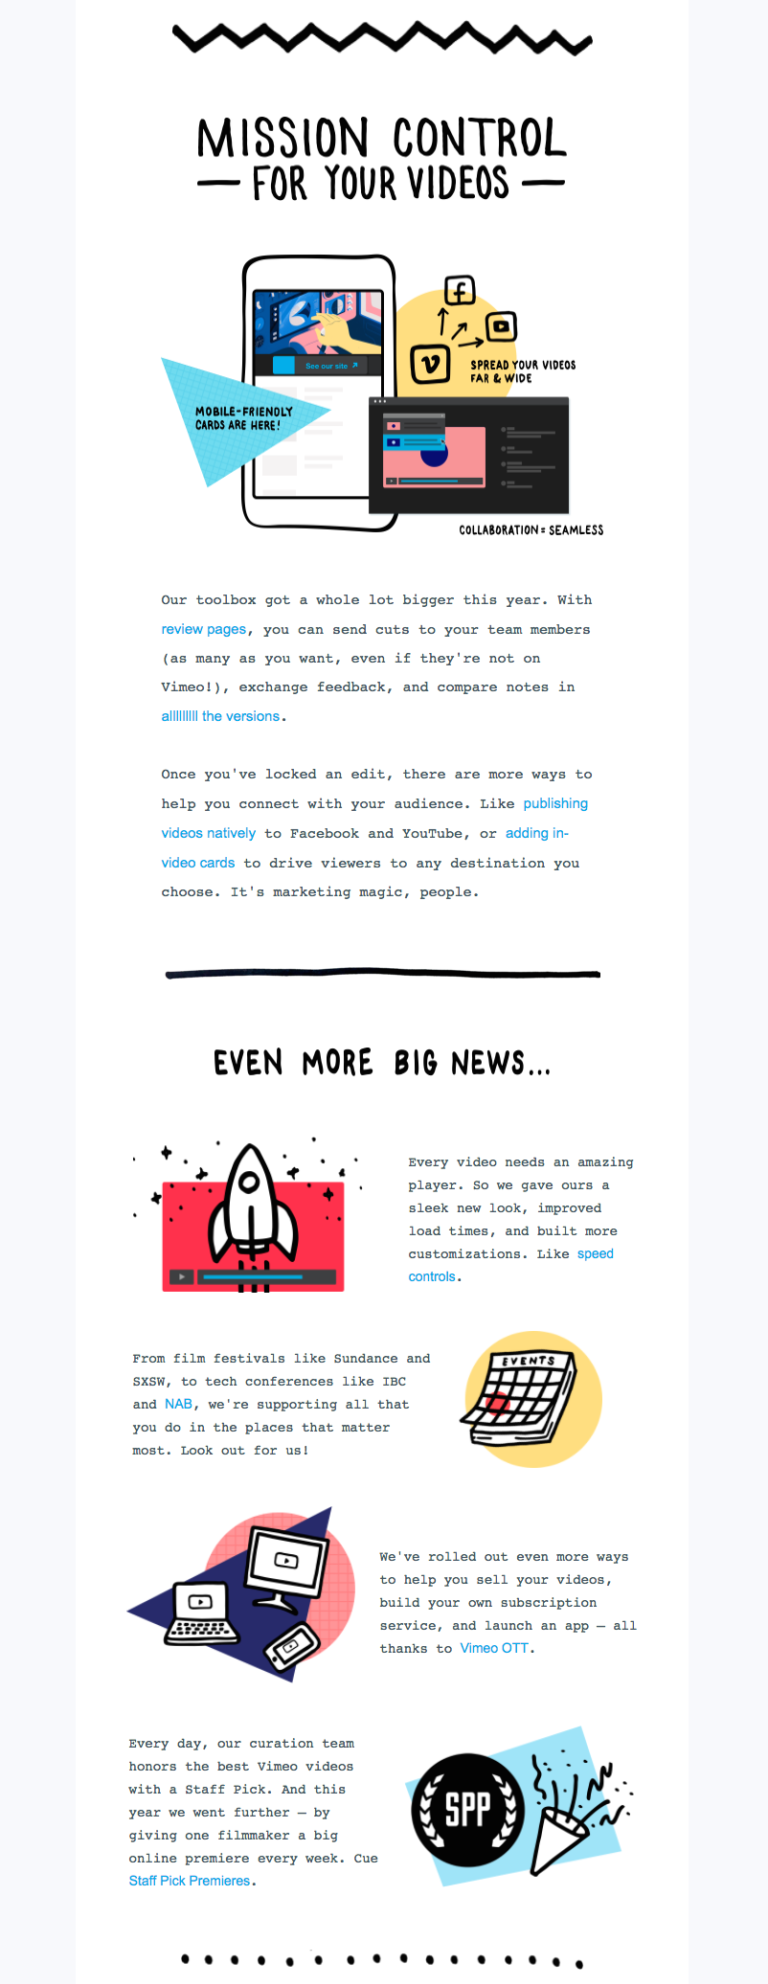 Email Newsletter Templates Design Tips Examples For - Online newsletter templates